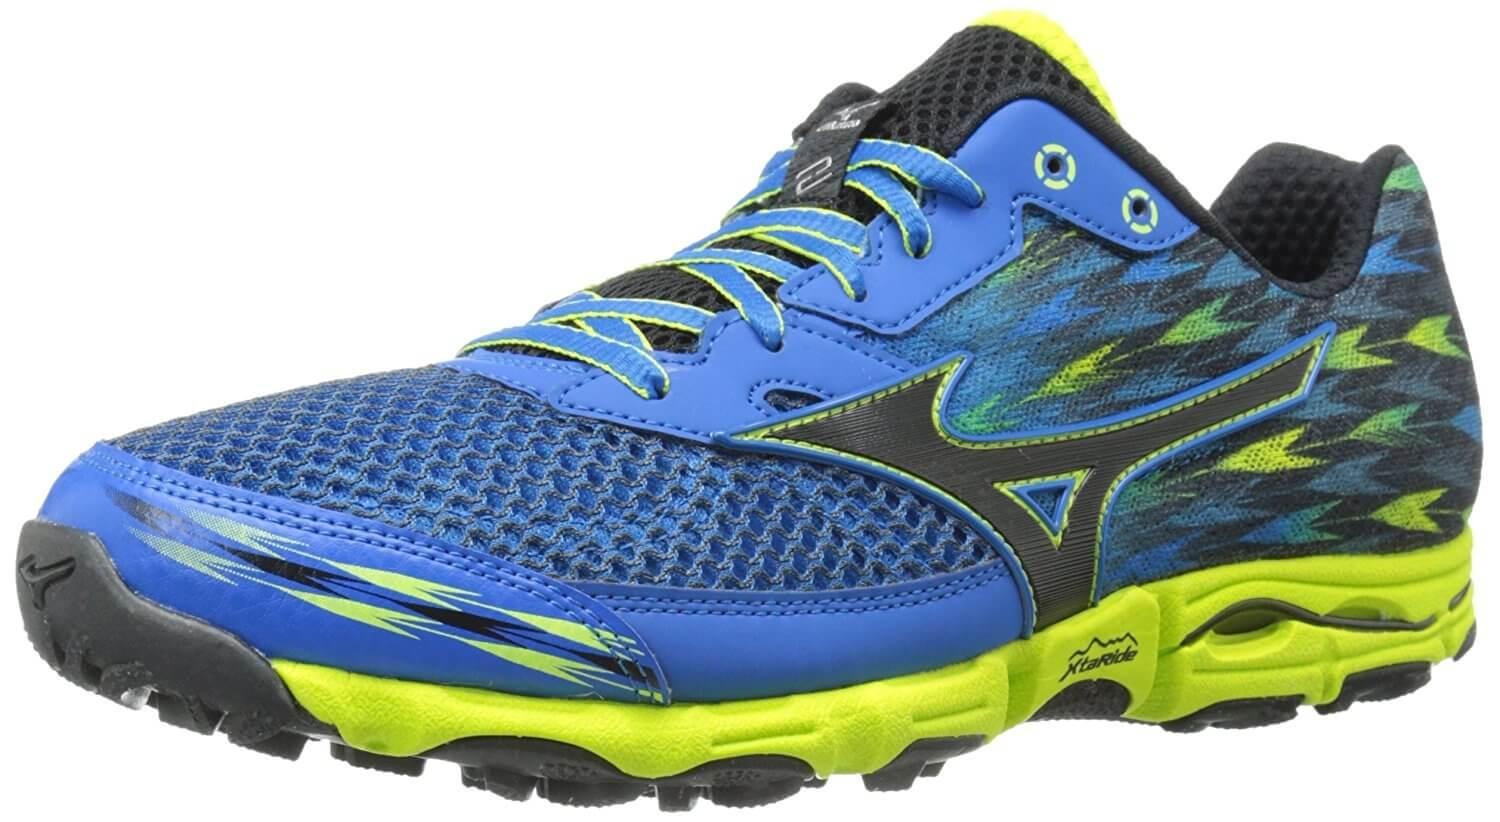 A three quarter perspective of the Mizuno Wave Hayate 2 trail running shoe